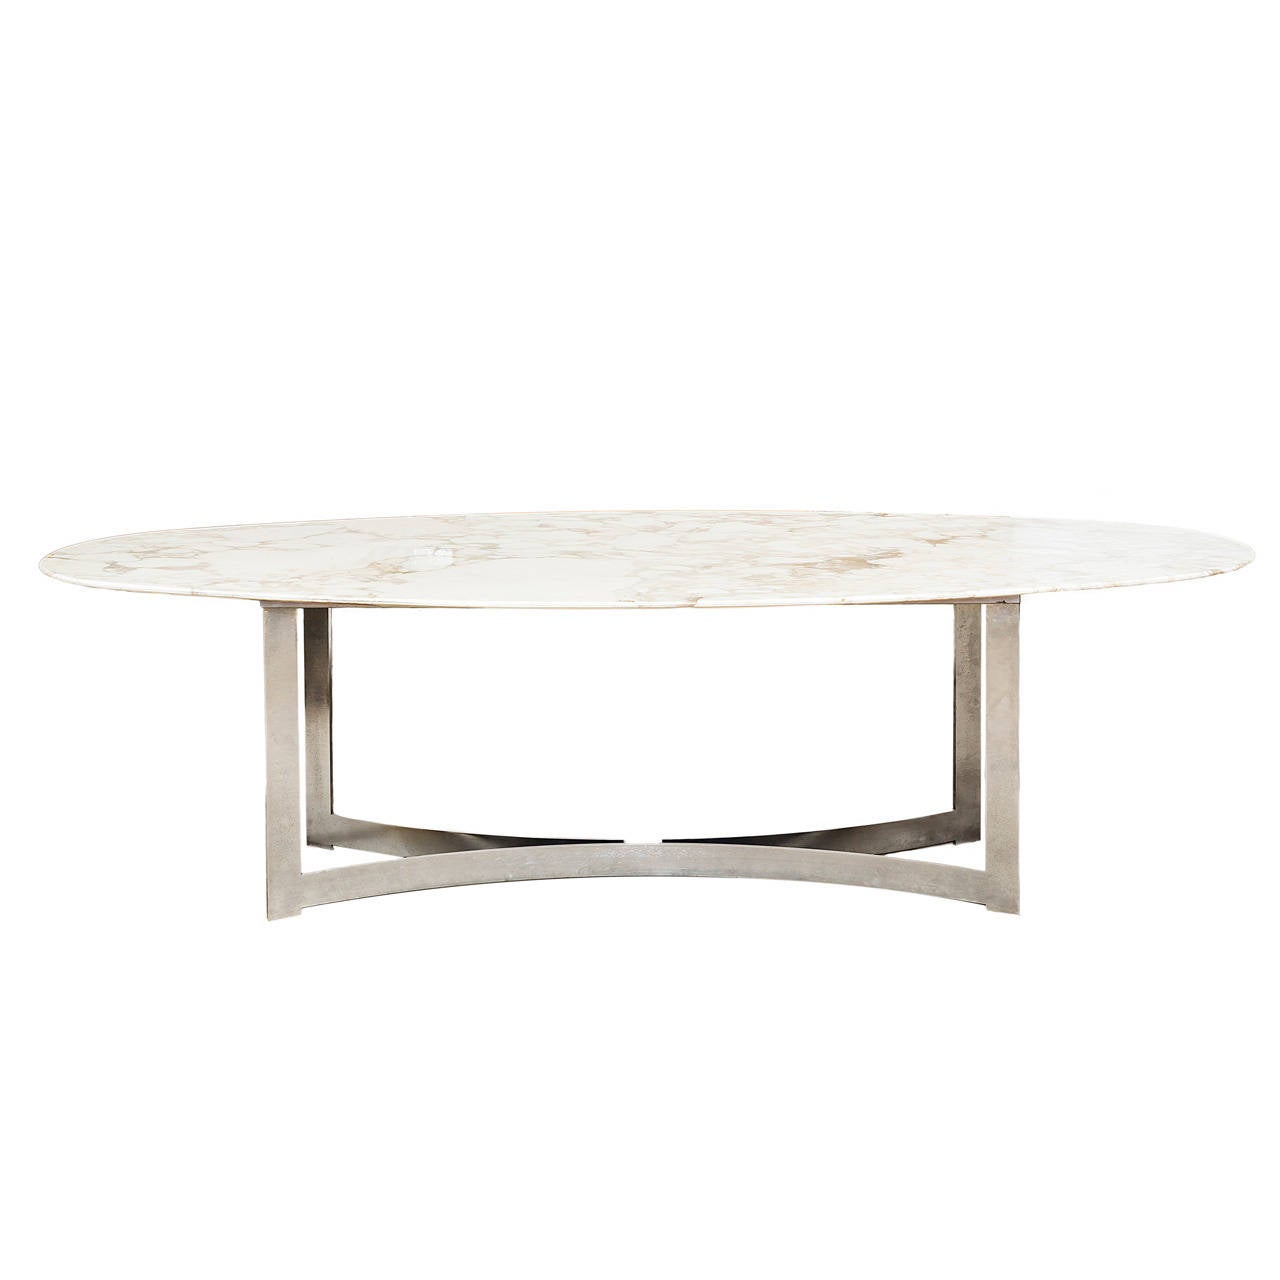 Oval marble top dining table at 1stdibs for Marble dining room table